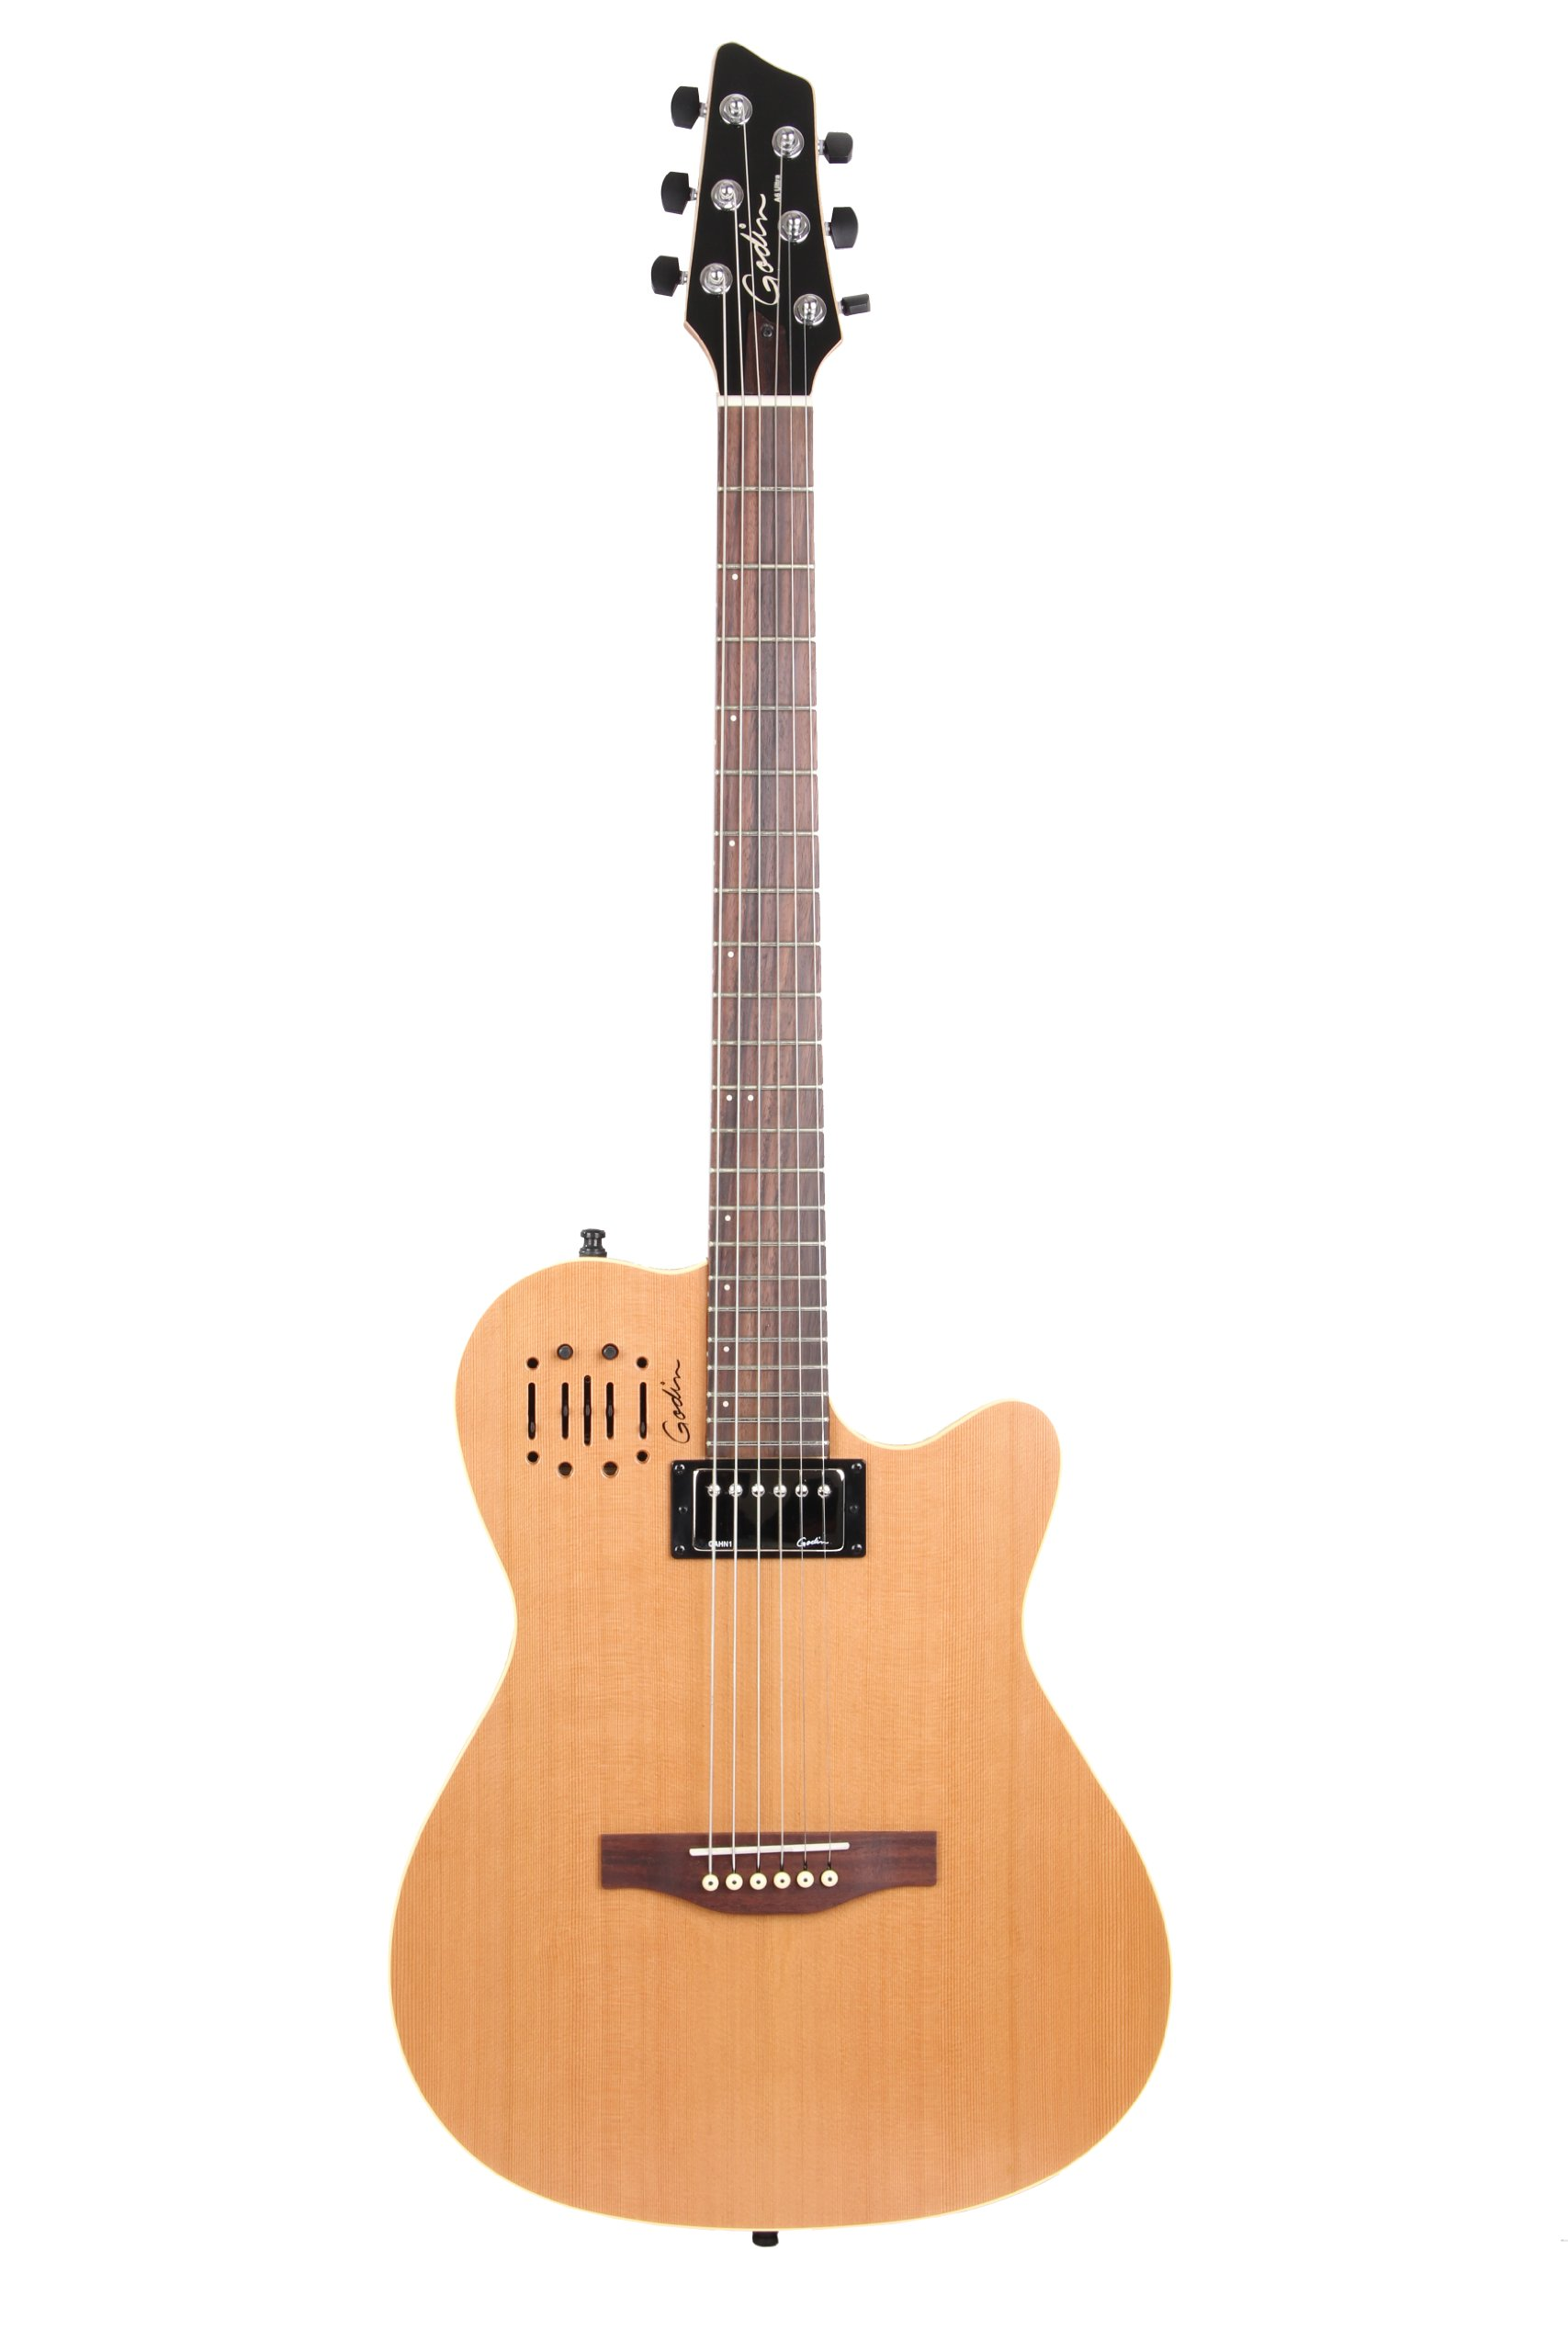 Godin A6 Two-Chambered Electro-Acoustic Guitar (Ultra Natural)